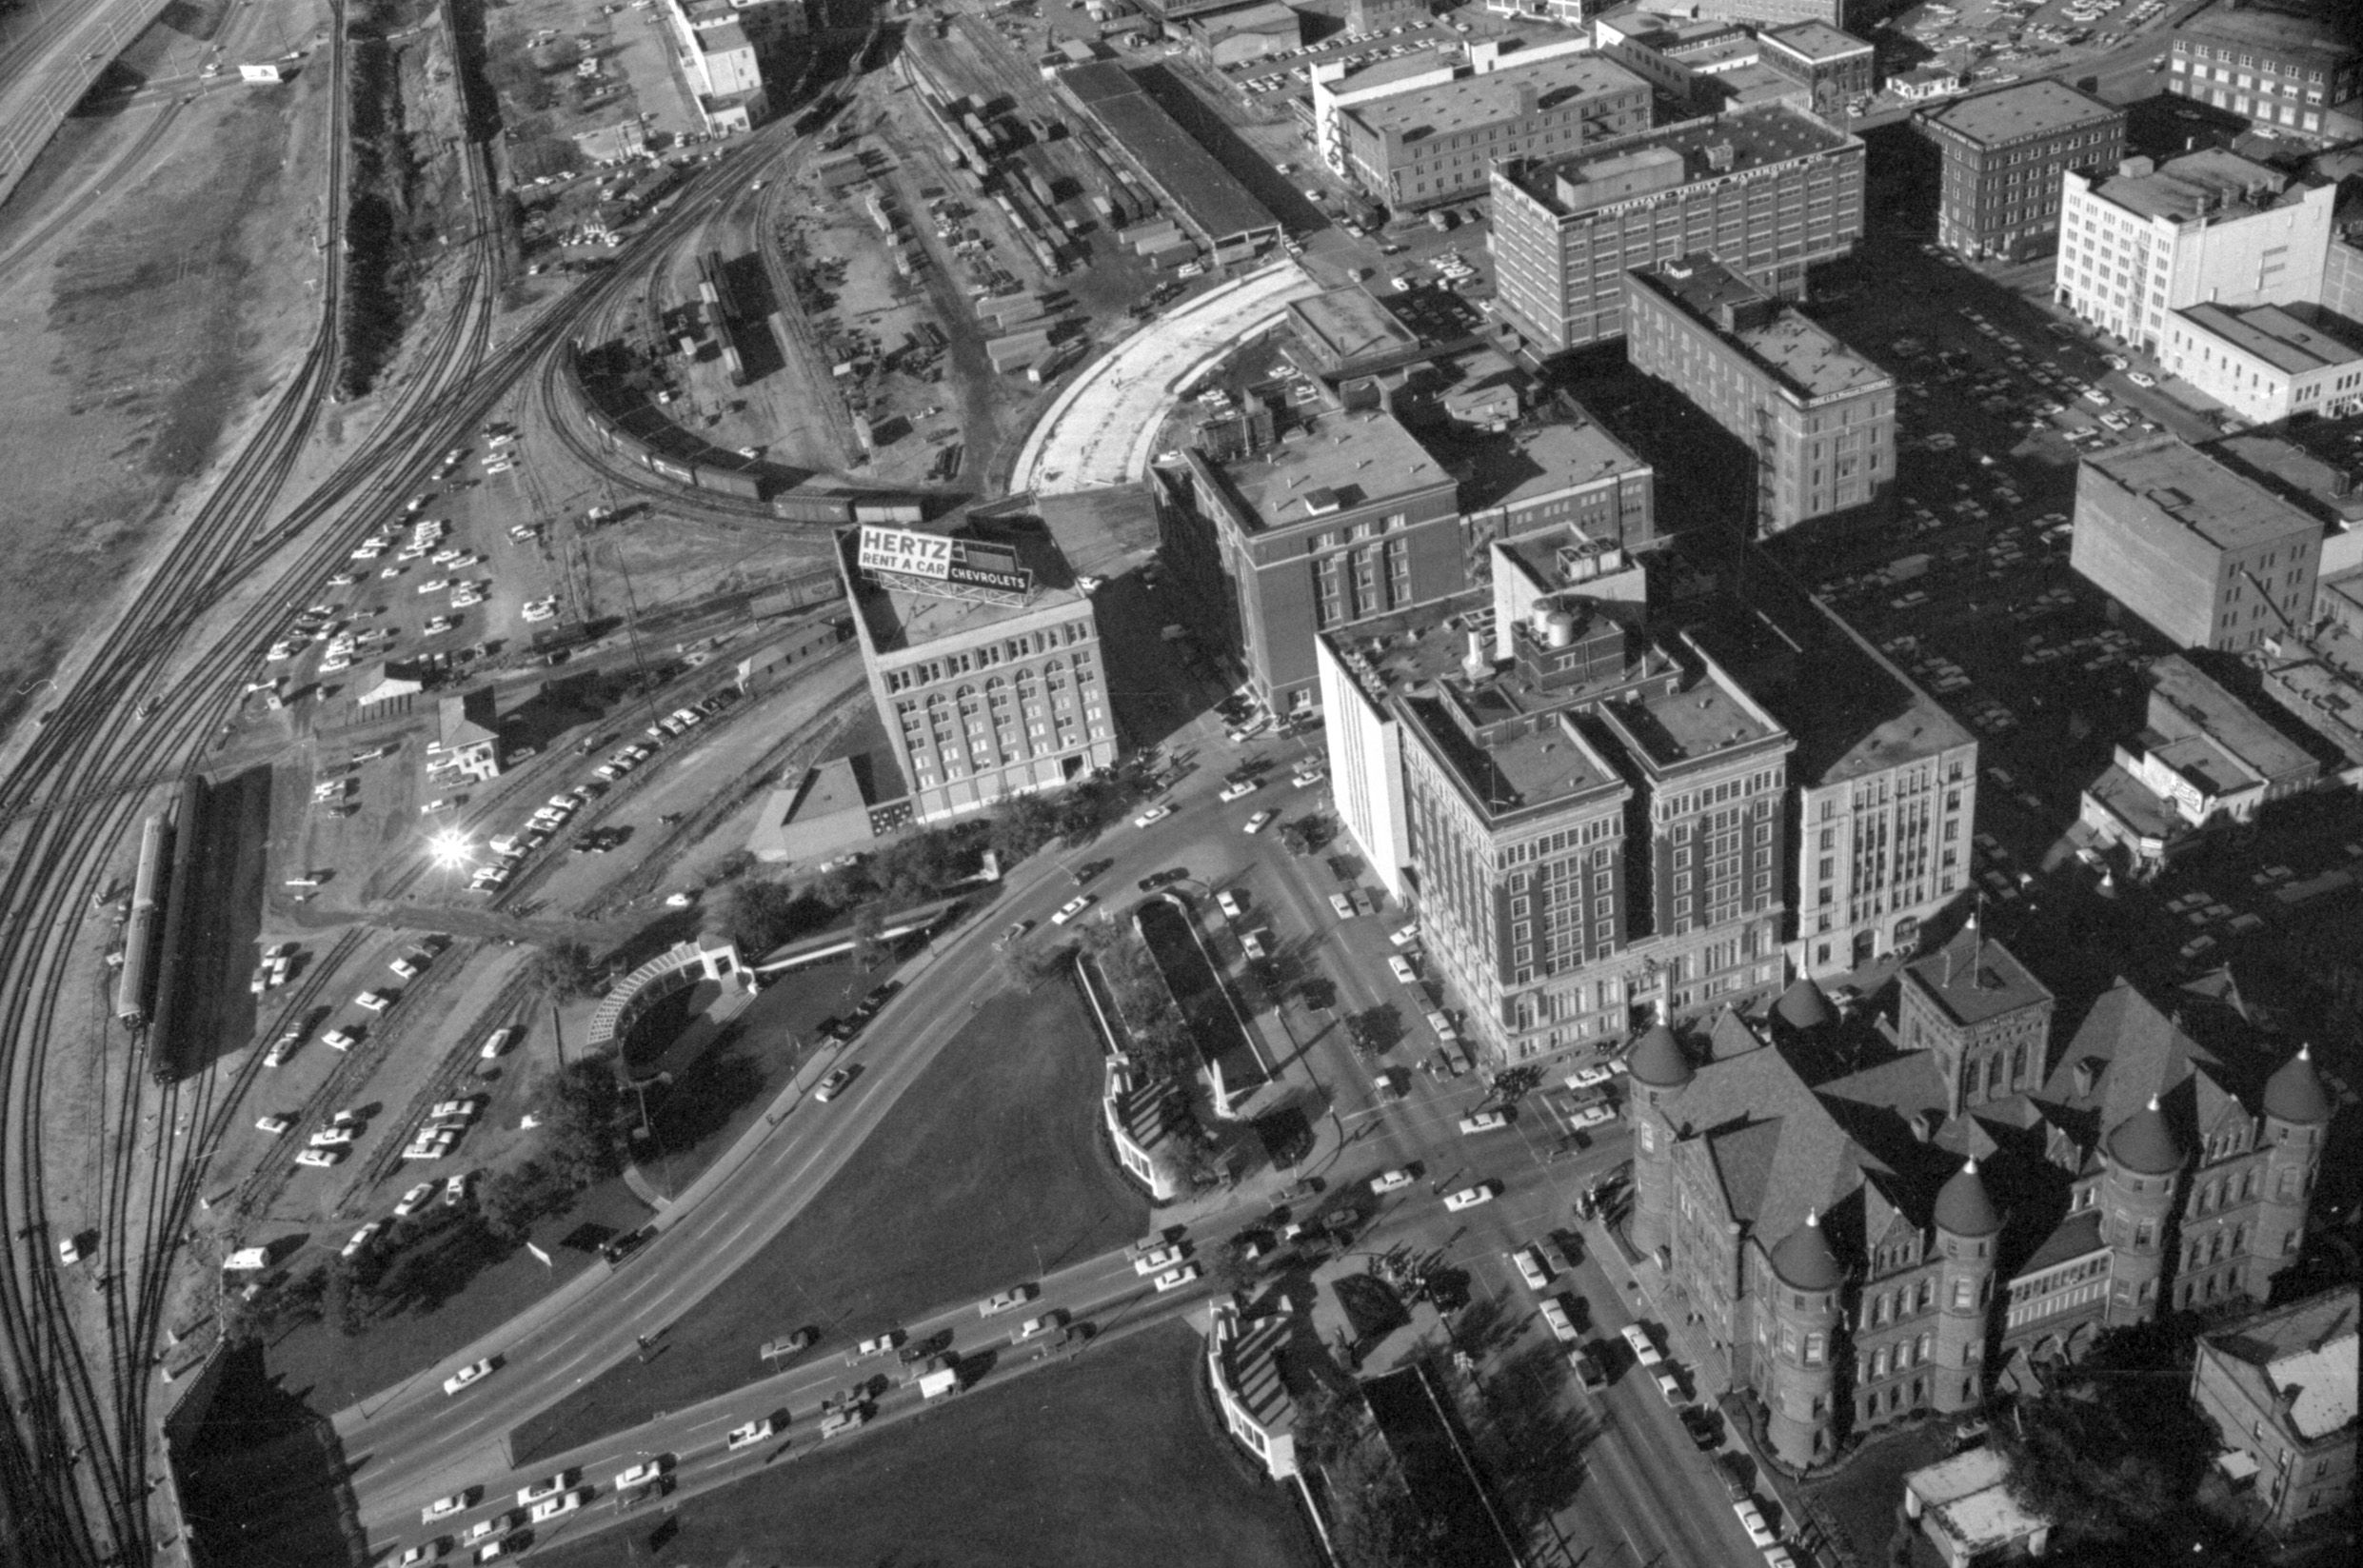 Aerial view of site of pres kennedys assassination elm